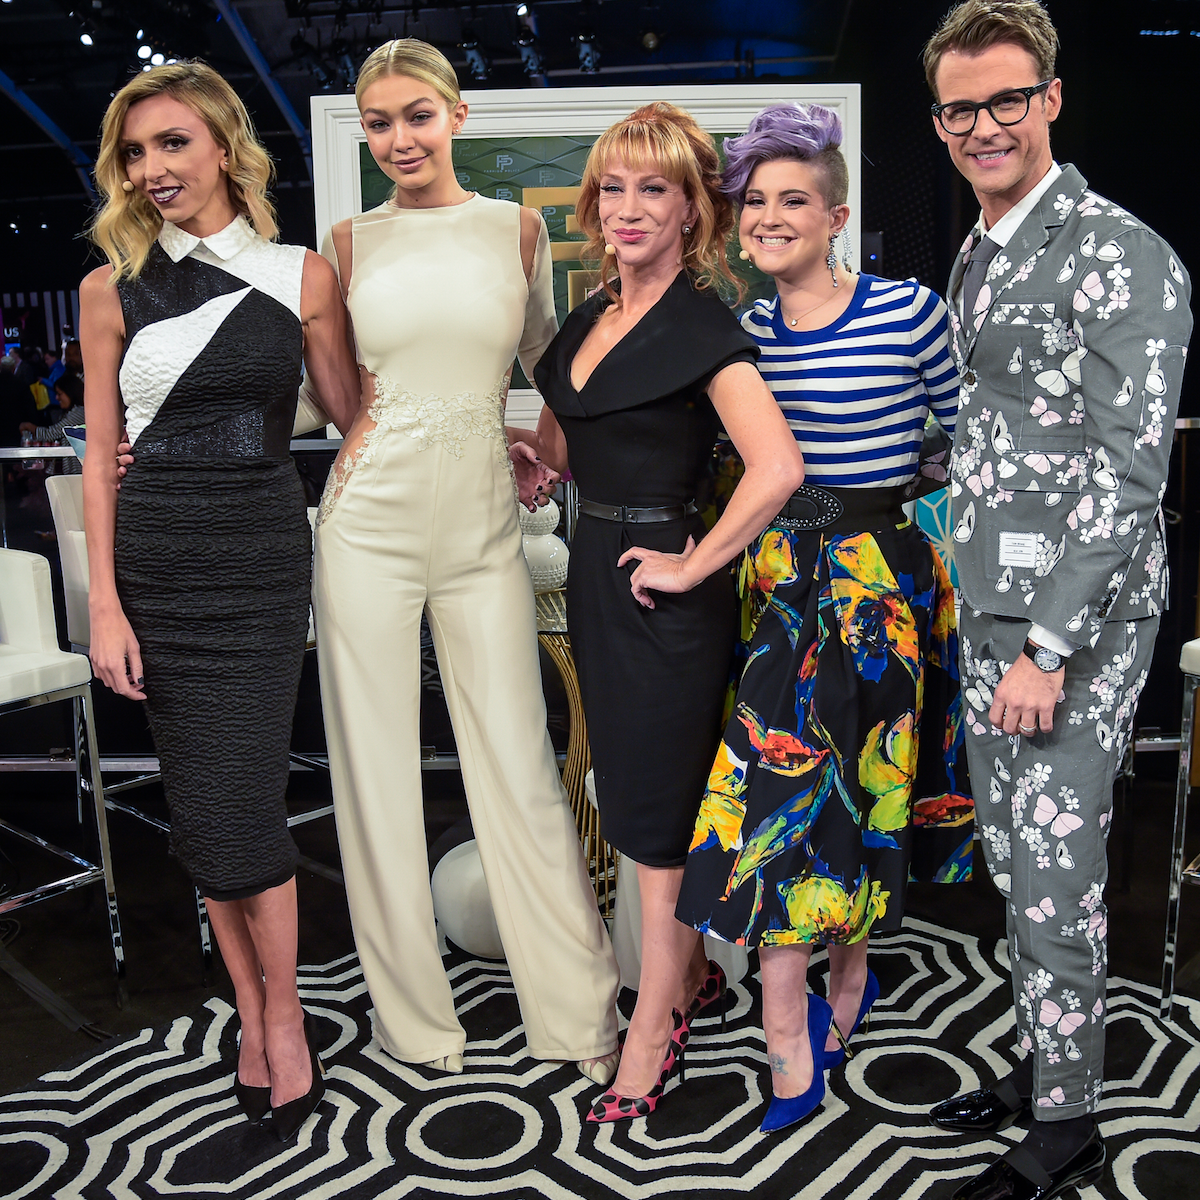 .@GiGiHadid is on FashionPolice tonight and she dishes on @CodySimpson! Get the scoop here: